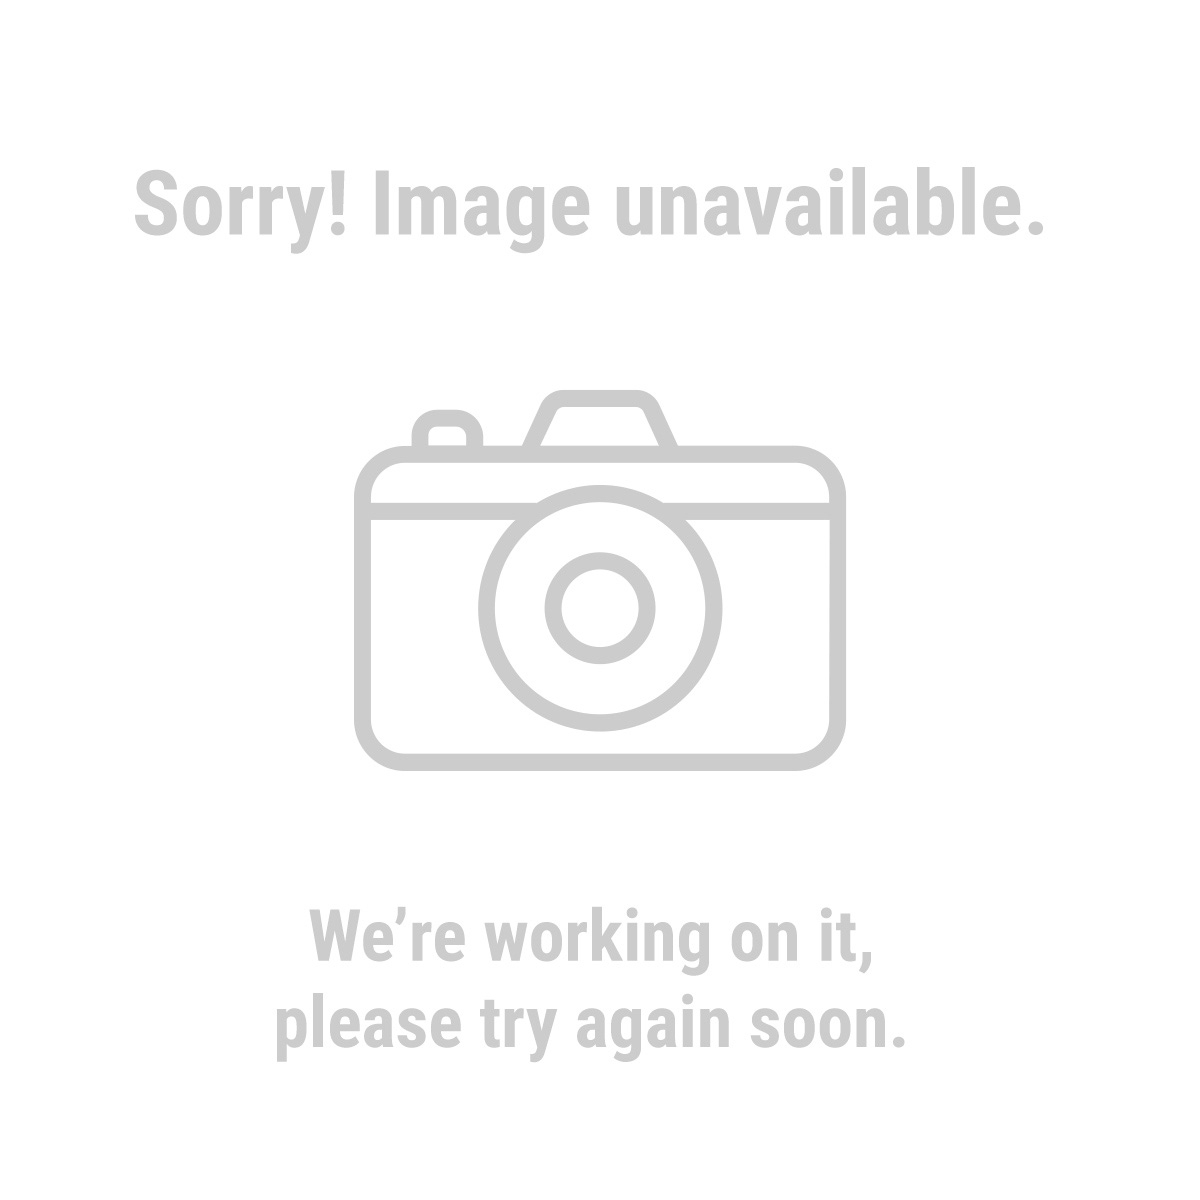 image_12144 ordered aftermarket winch controller plowsite badland winch wiring diagram 2000lb at mifinder.co